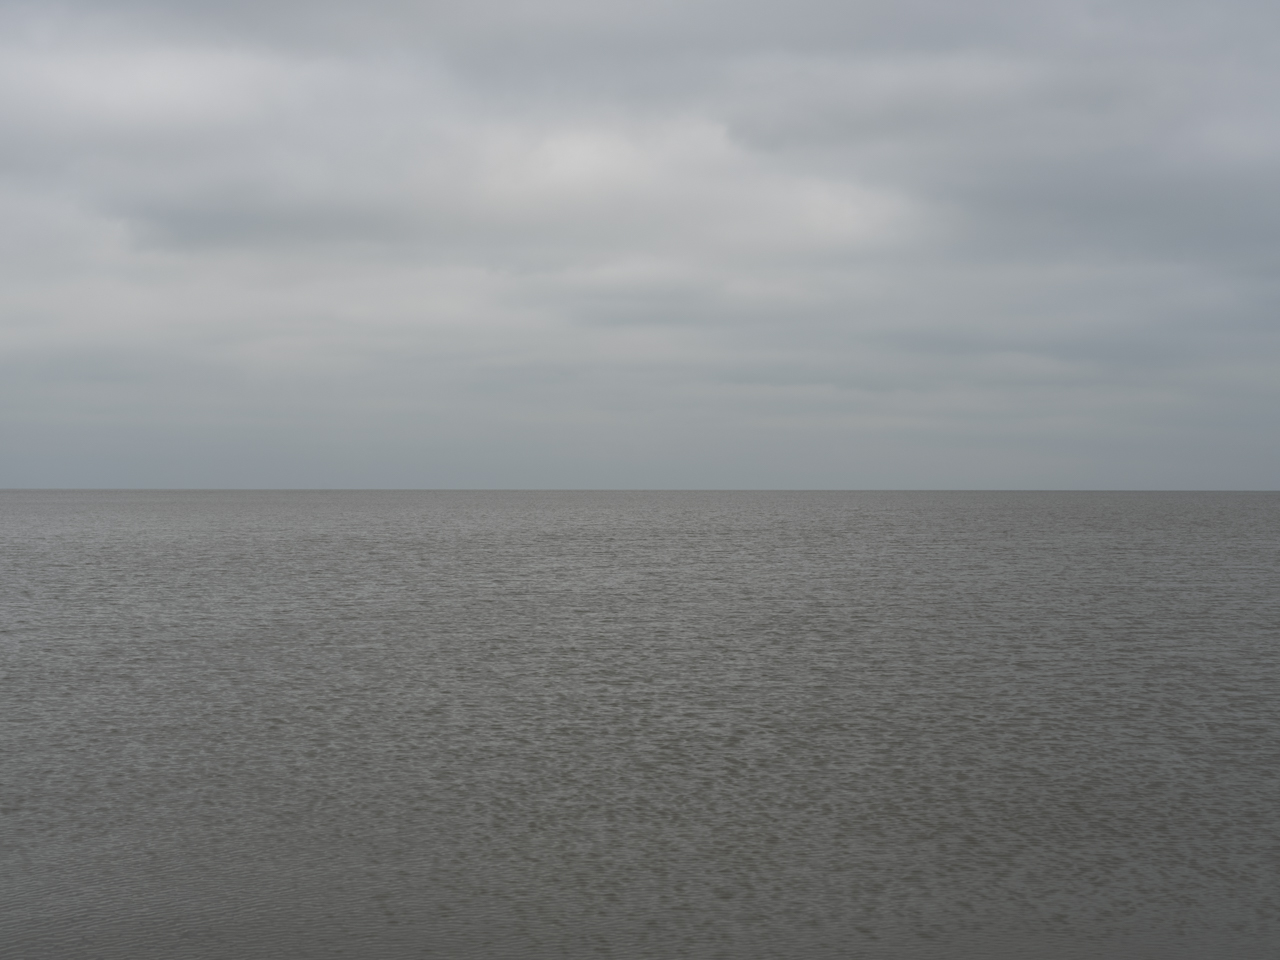 gray day with heavy clouds and rippling water